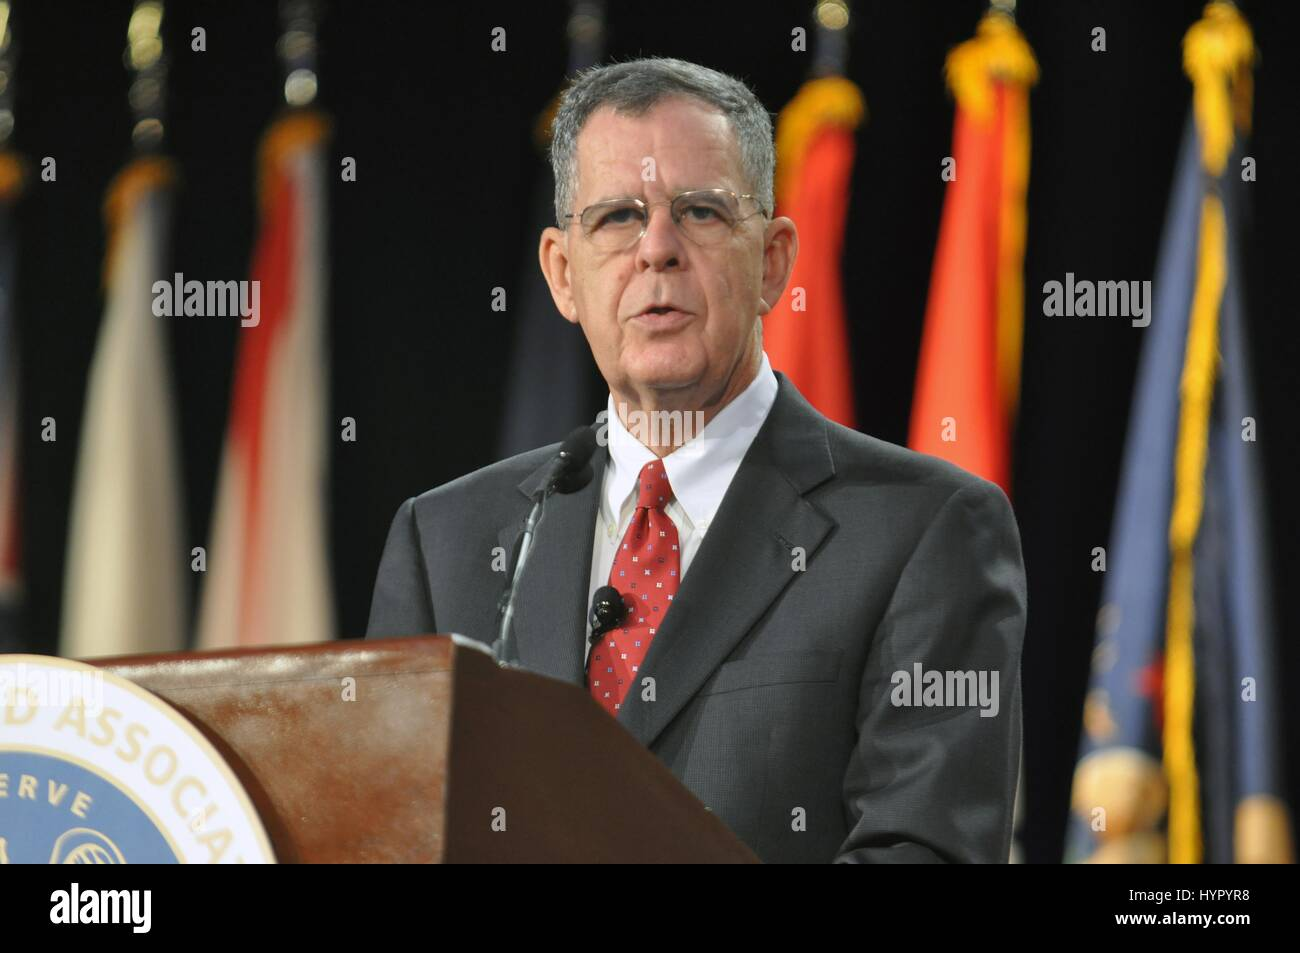 U.S. Reserve Affairs Assistant Secretary of Defense Dennis McCarthy speaks during the 131st Guard Association of - Stock Image